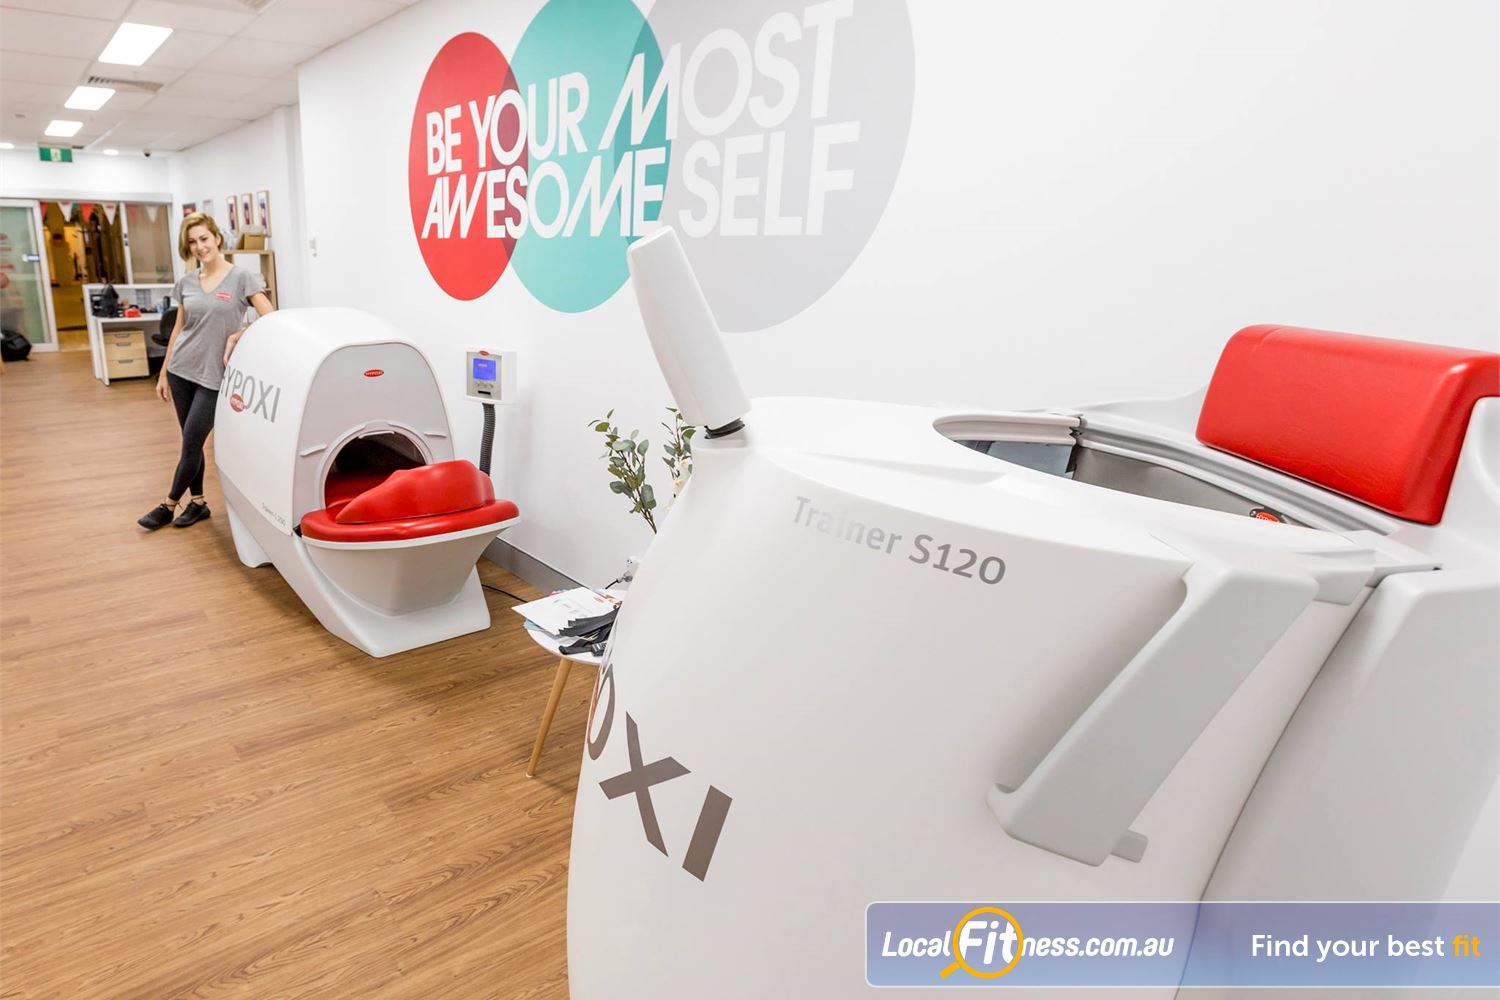 HYPOXI Weight Loss Near Melville Low-impact exercise with advanced technology and healthy nutrition.